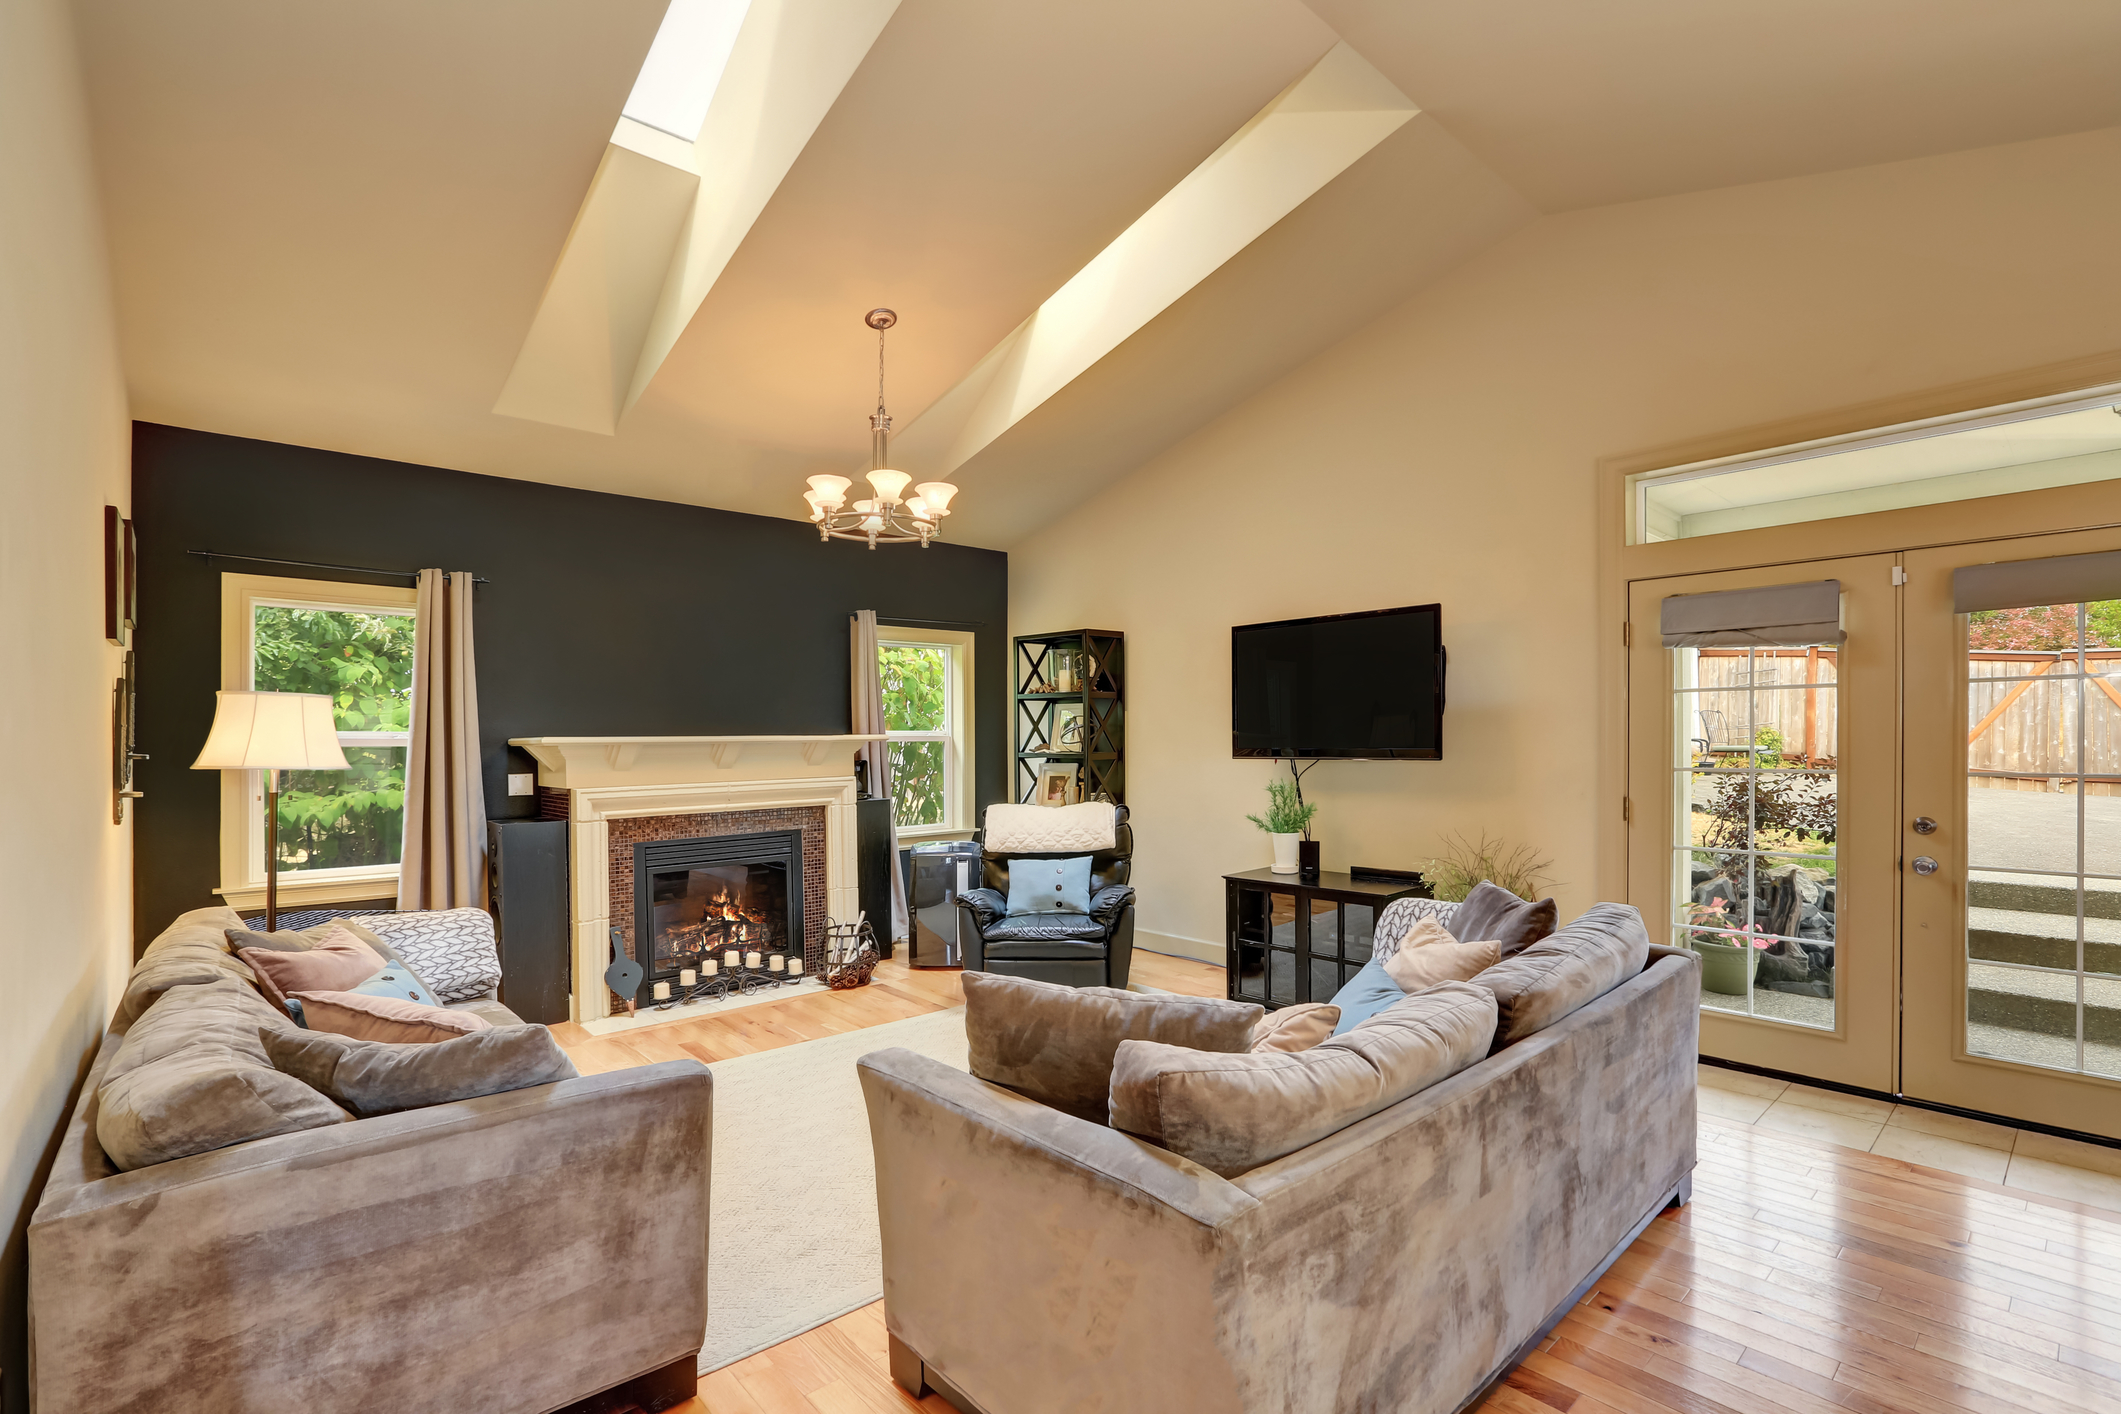 Classic American family room with fireplace and sofas